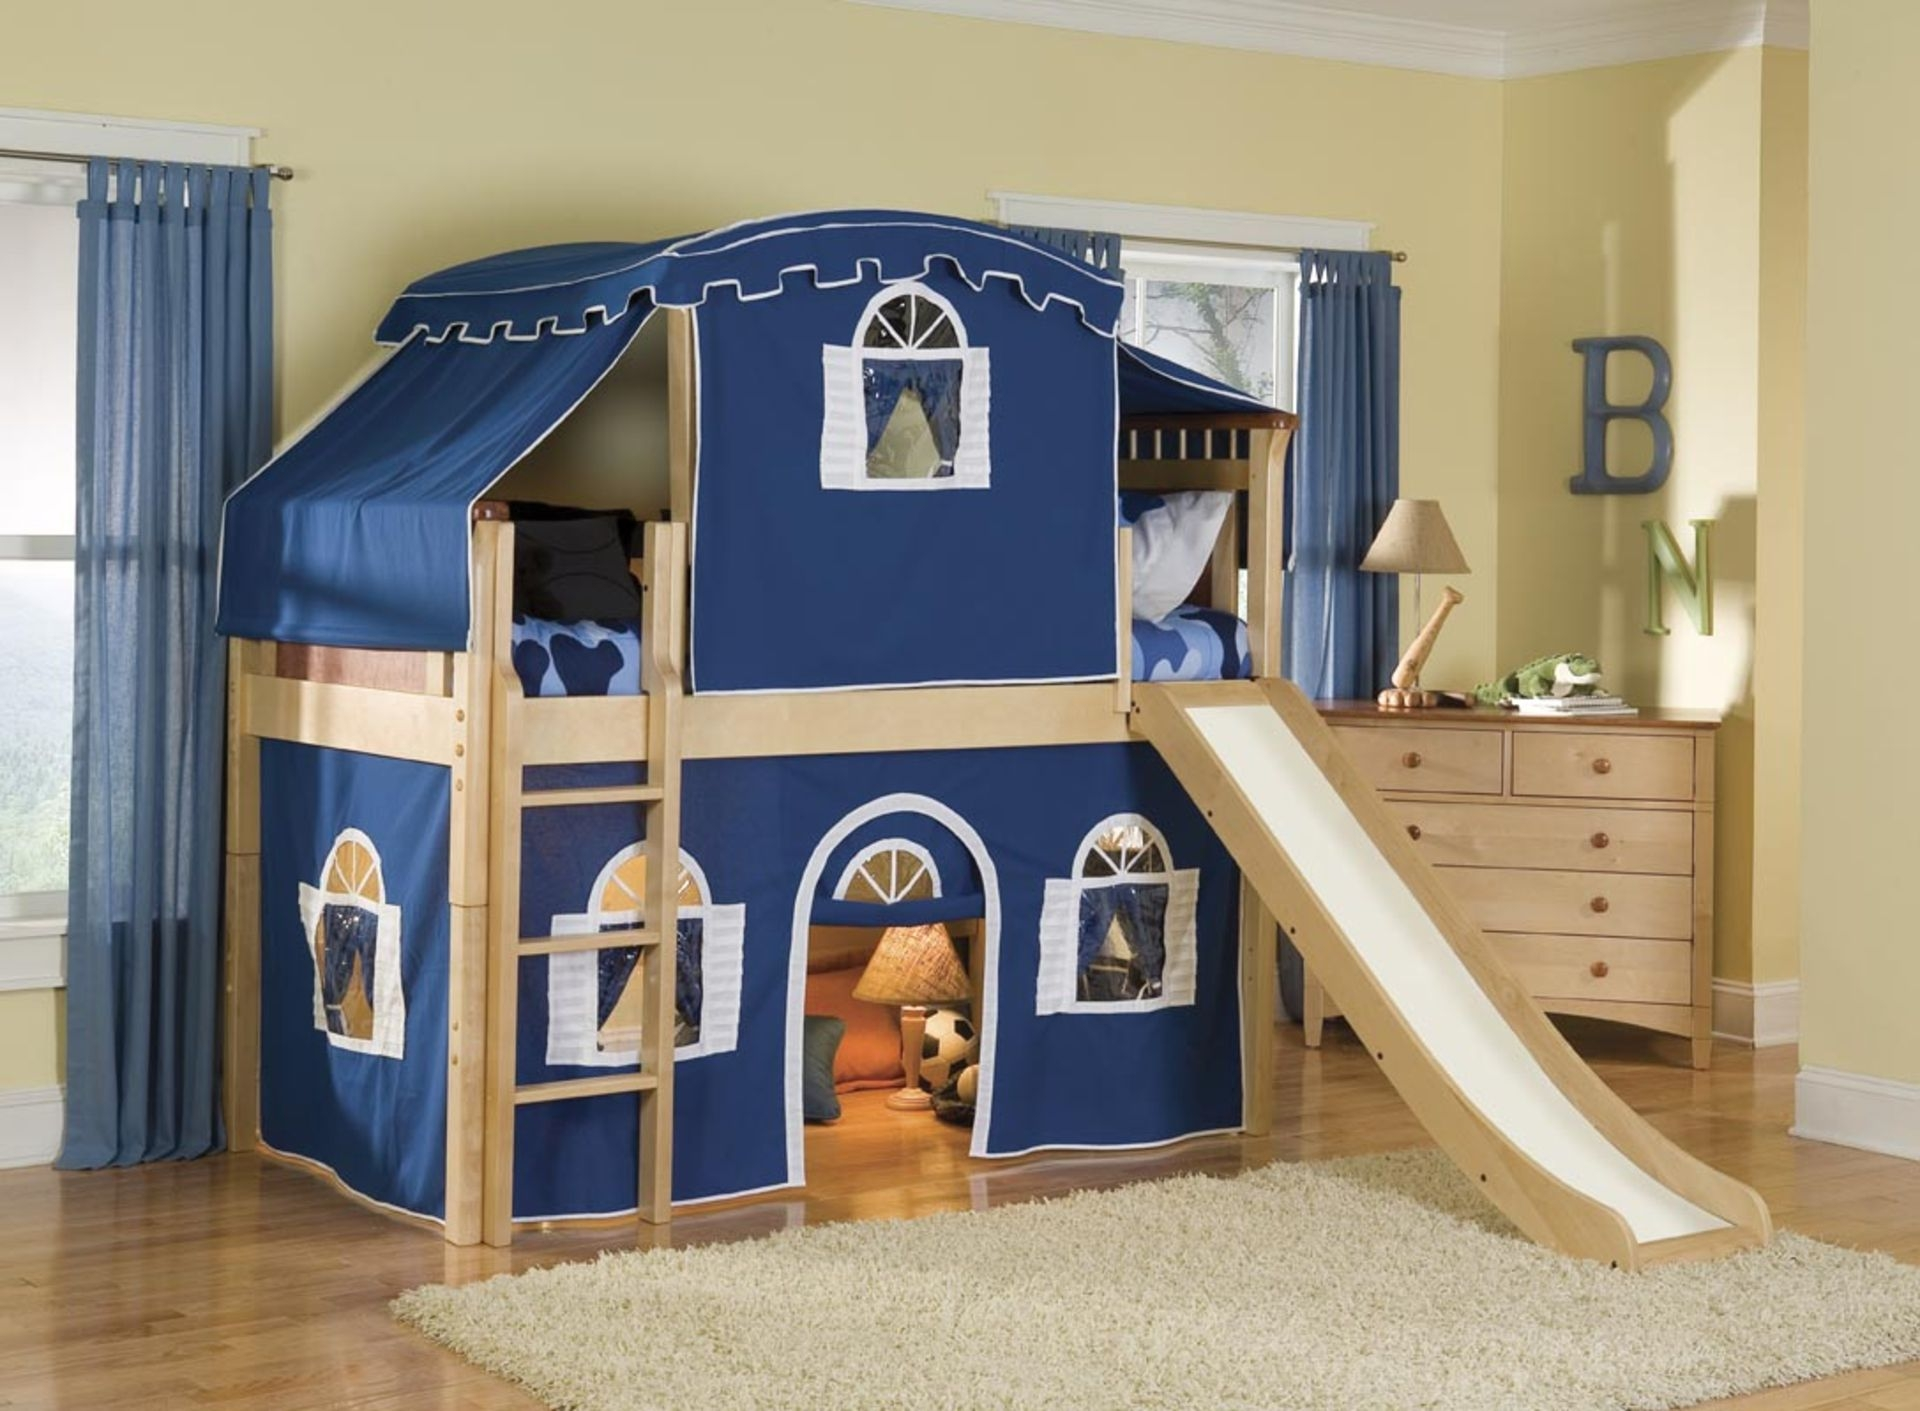 Cool Bunk Beds With Slides Cheaper Than Retail Price Buy Clothing Accessories And Lifestyle Products For Women Men